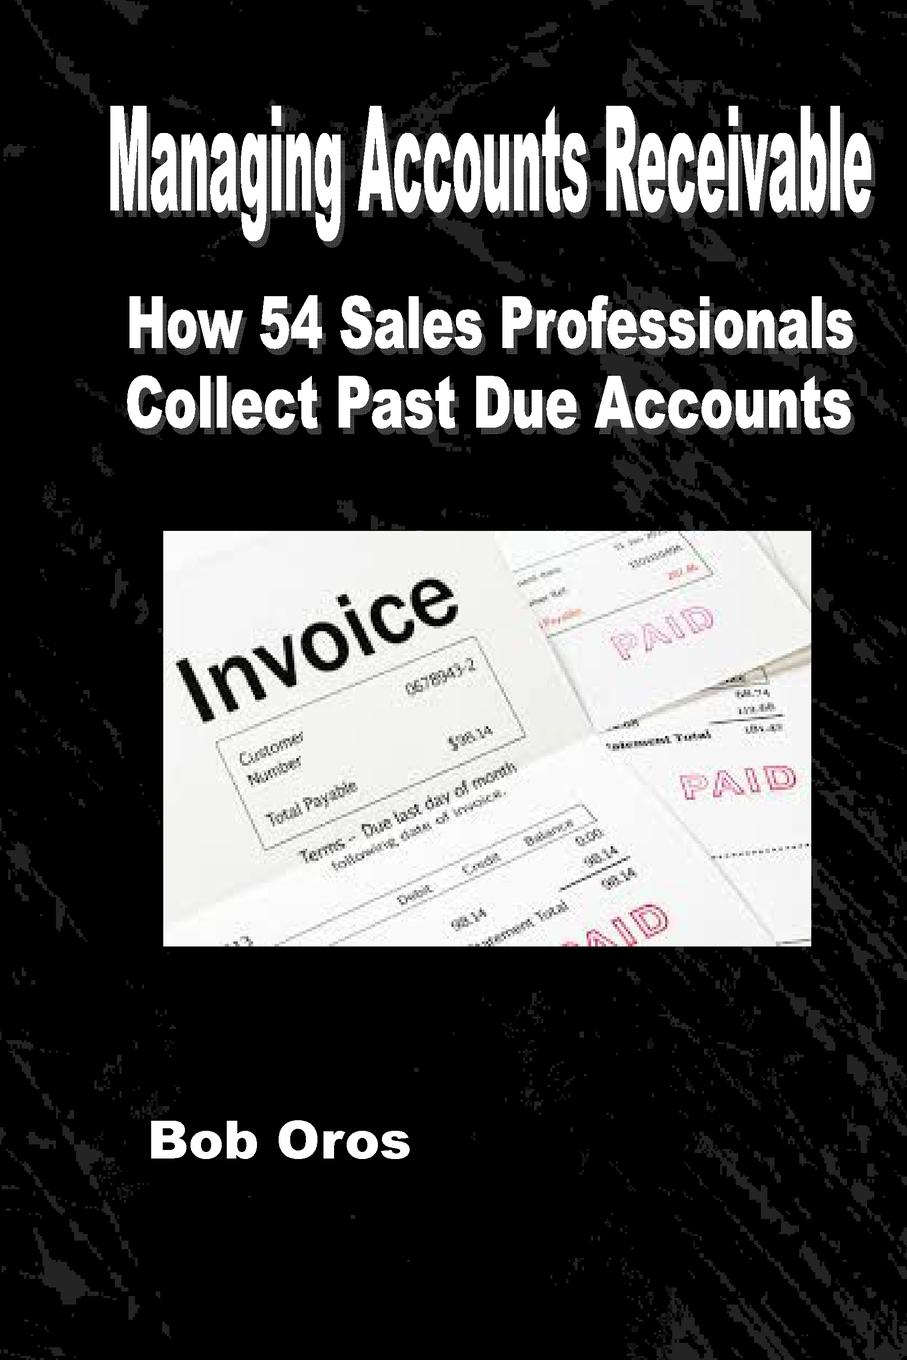 Managing Accounts Receivable. How 54 Sales Professionals Collect Past Due Accounts If you're looking for a heavy duty book with tons of details...